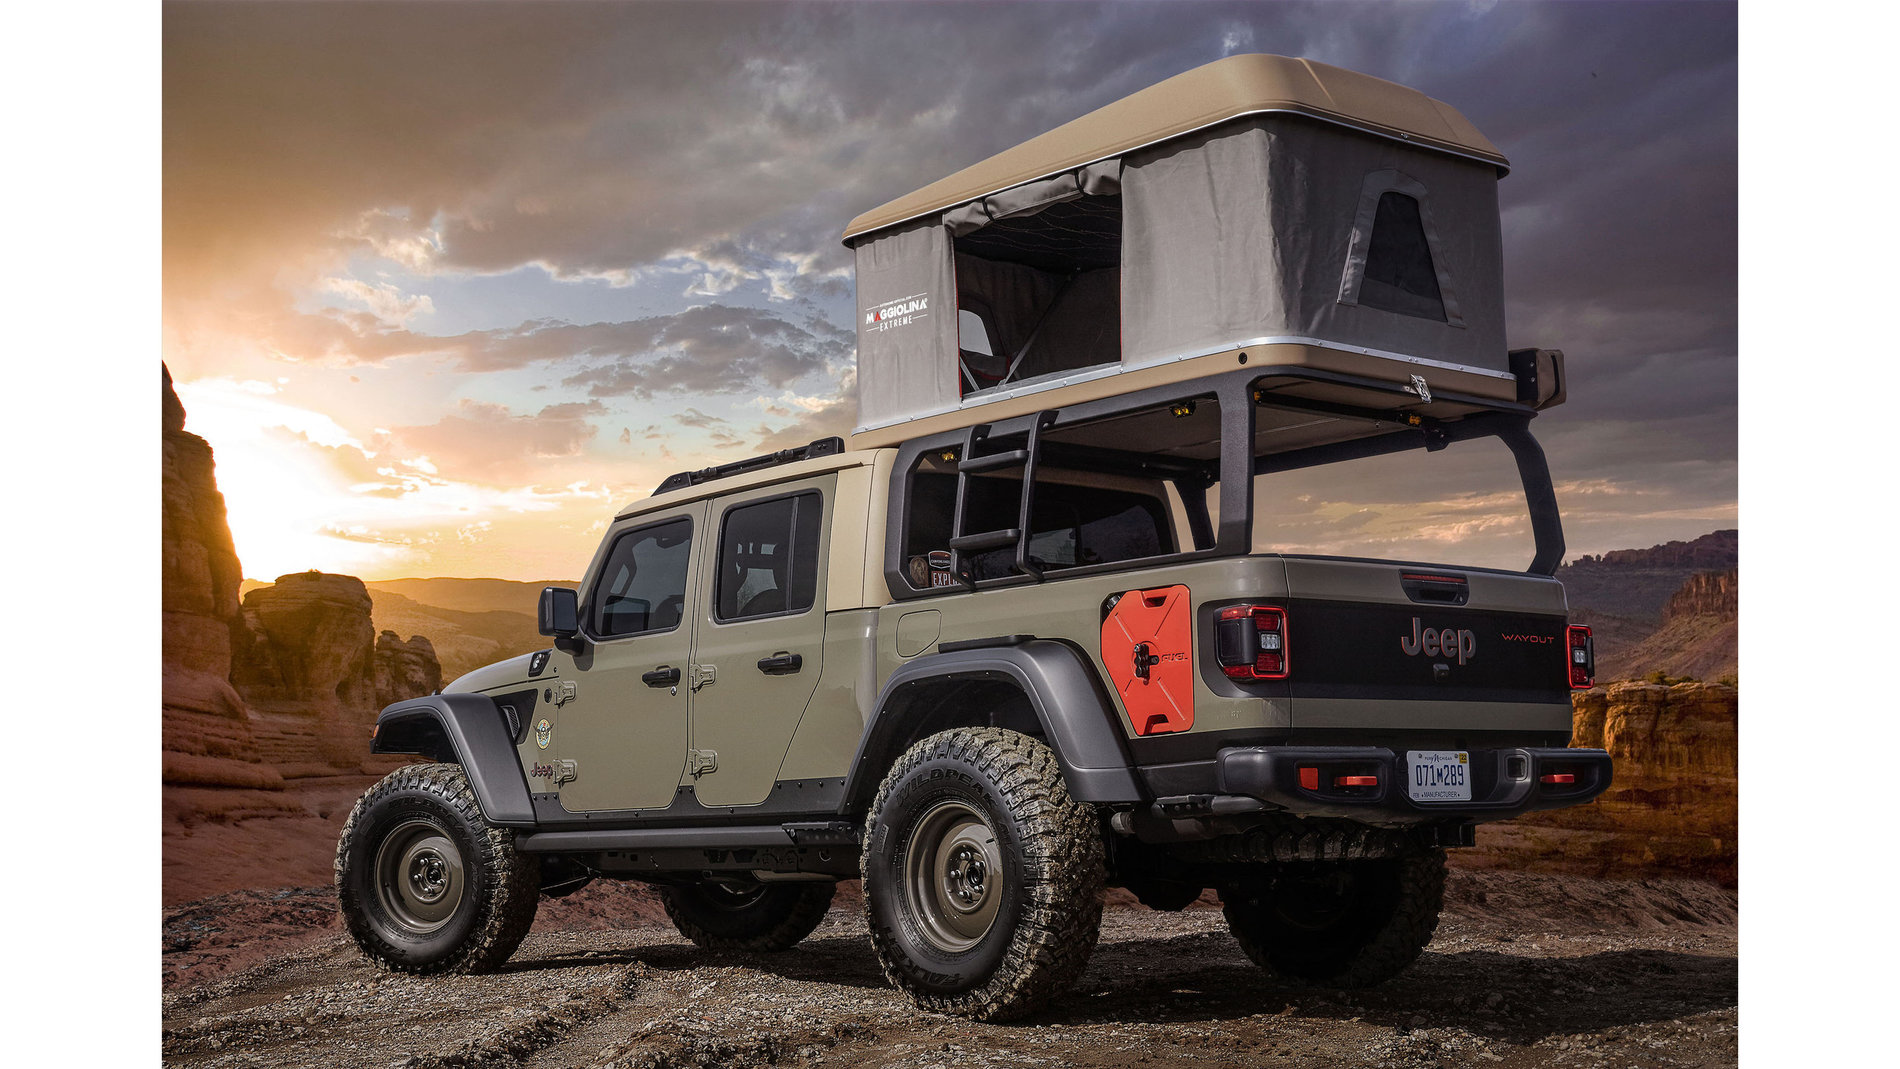 Jeep Gladiator Wayout Concept in Gator Color   Jeep ...